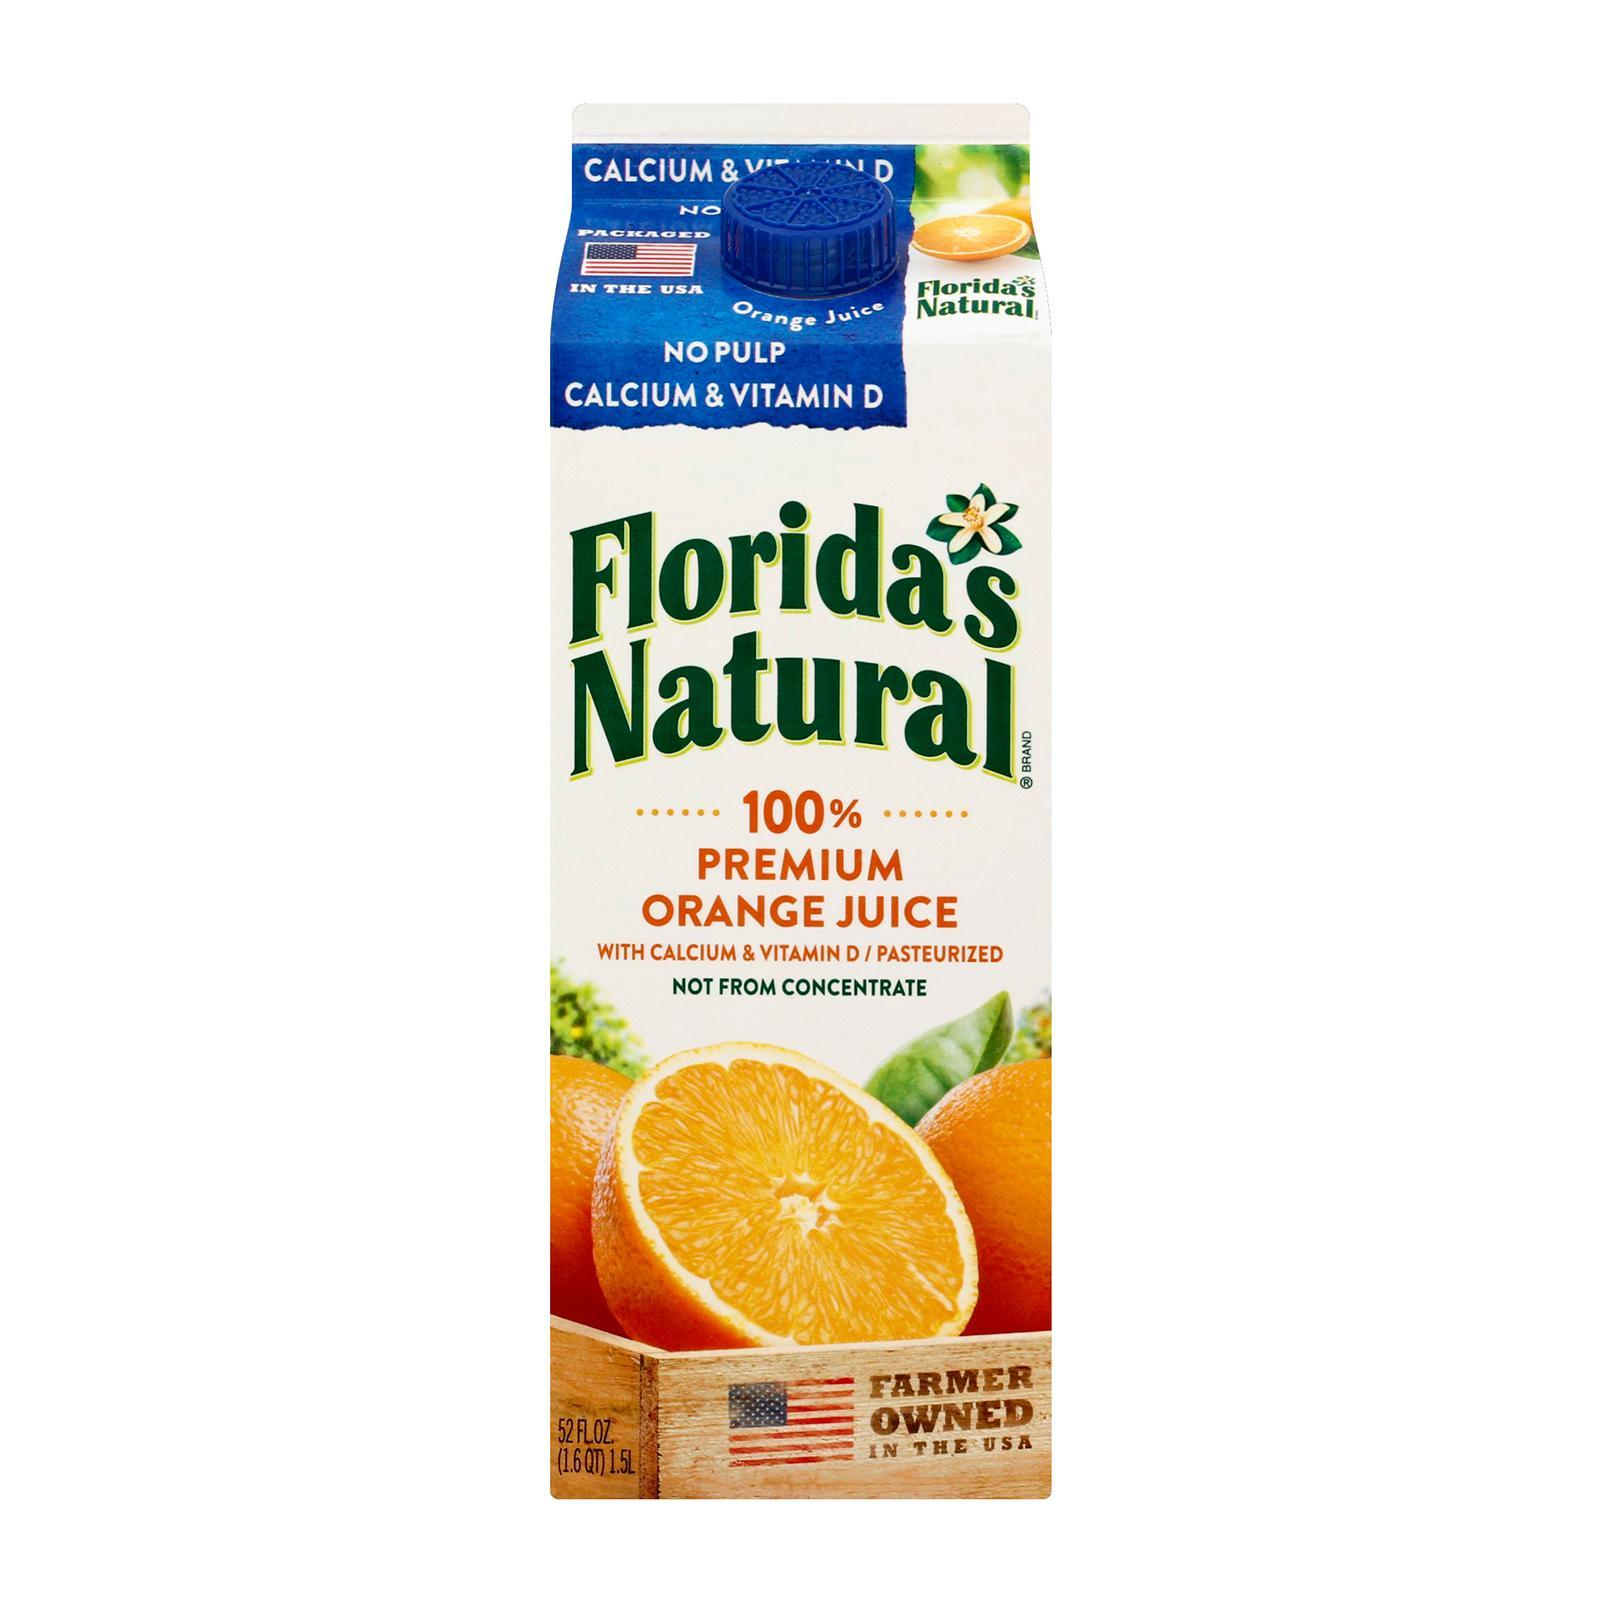 Florida's Natural NFC Premium with Calcium and Vitamin D (No Pulp) Orange Juice